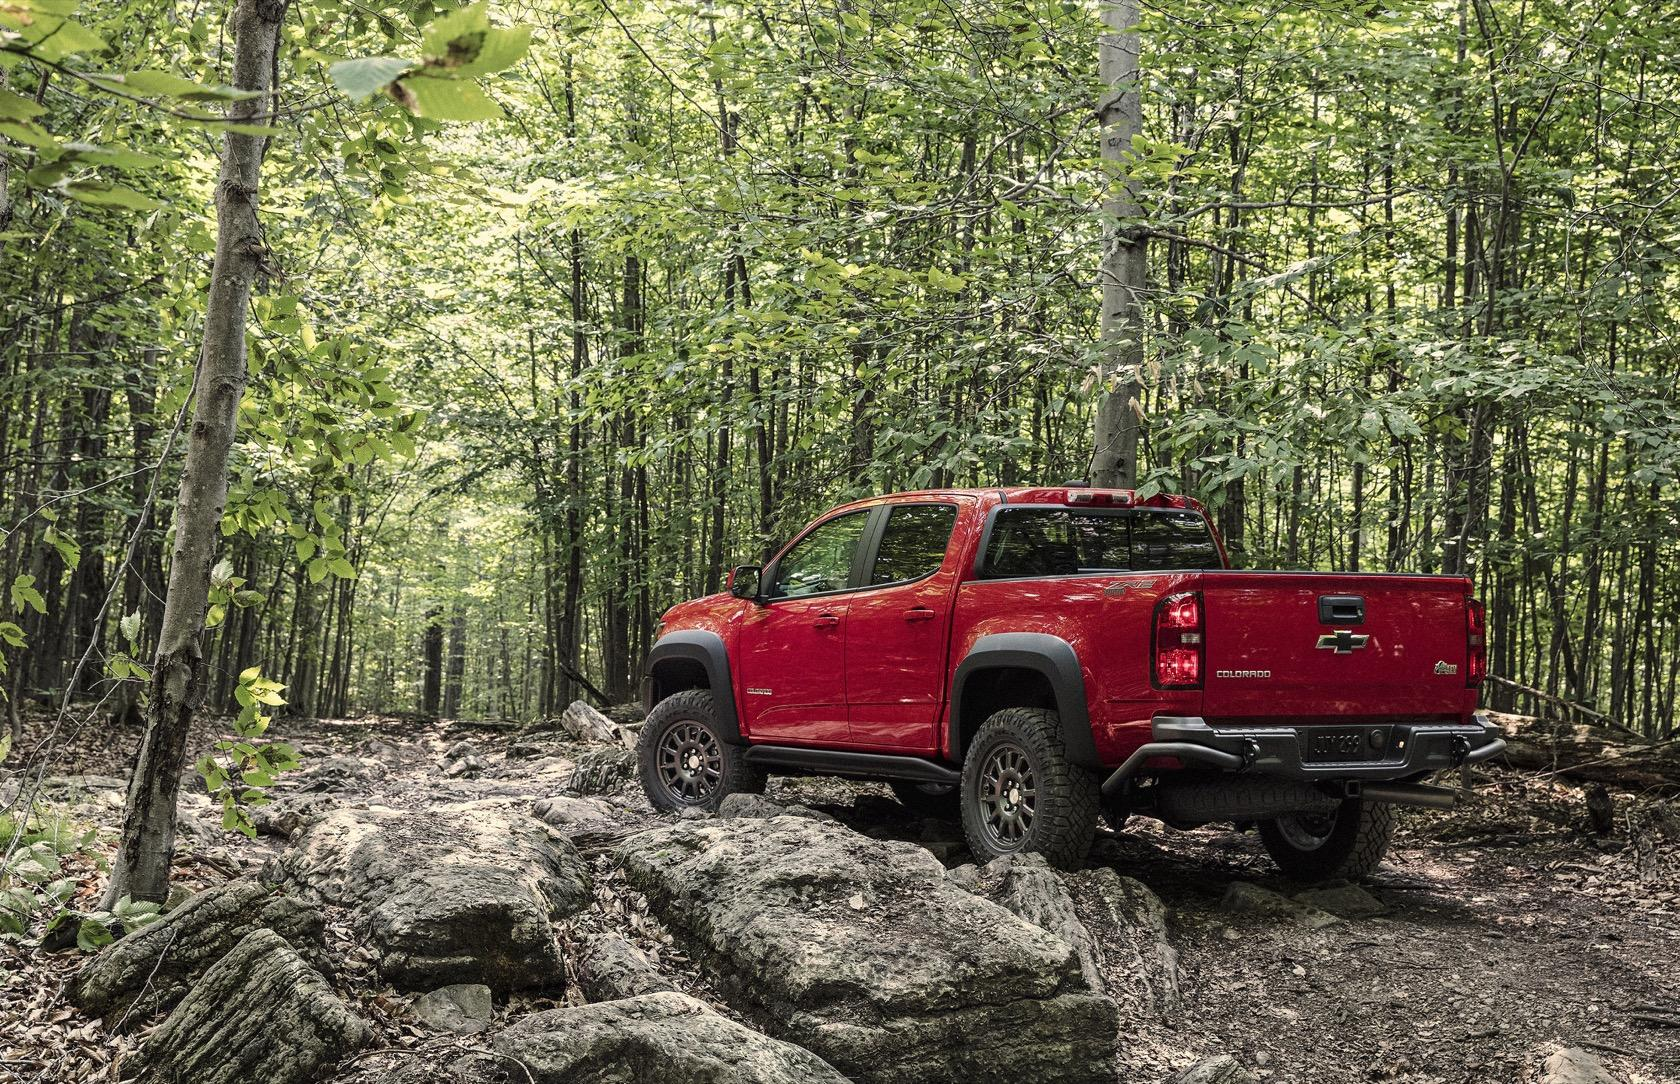 2019 Colorado ZR2 Bison aims to do for Chevy what Raptor did for